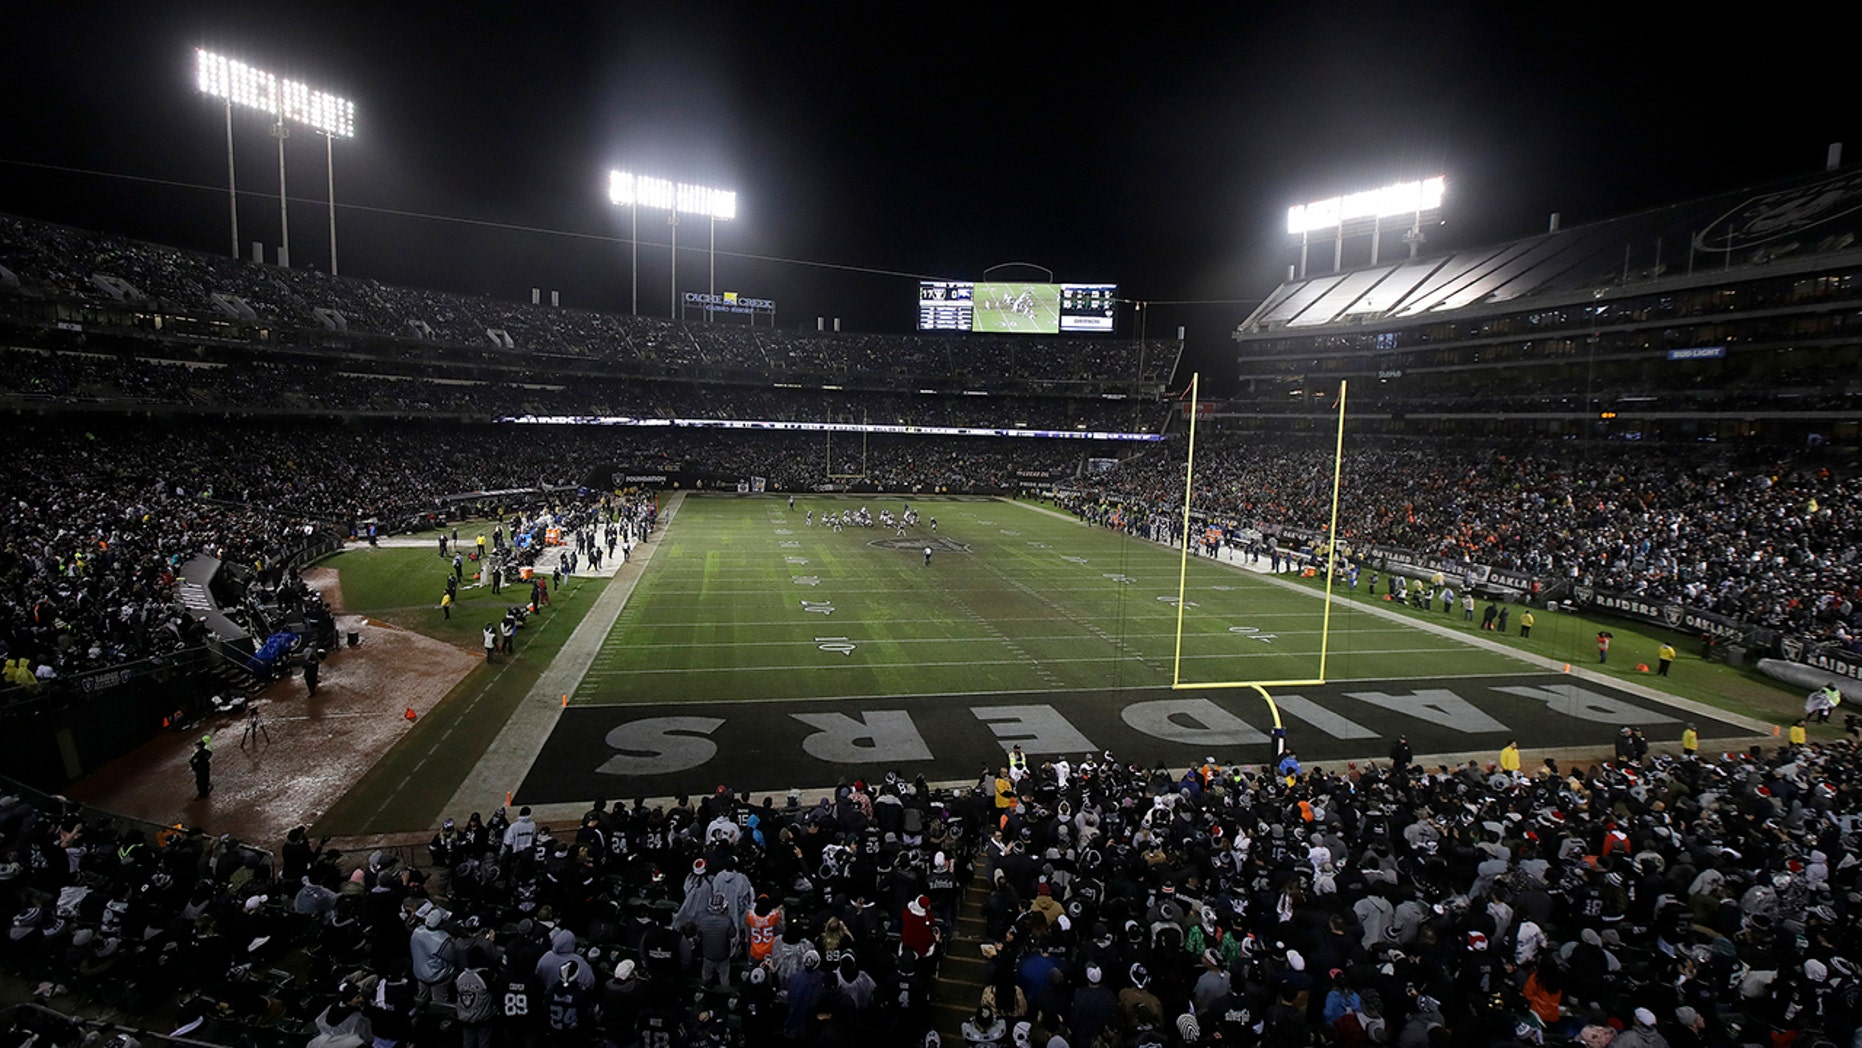 FILE - In this Dec. 24, 2018, file photo, fans watch from a general view at Oakland Alameda County Coliseum during the second half of an NFL football game between the Oakland Raiders and the Denver Broncos in Oakland, Calif. (AP Photo/Jeff Chiu, File)